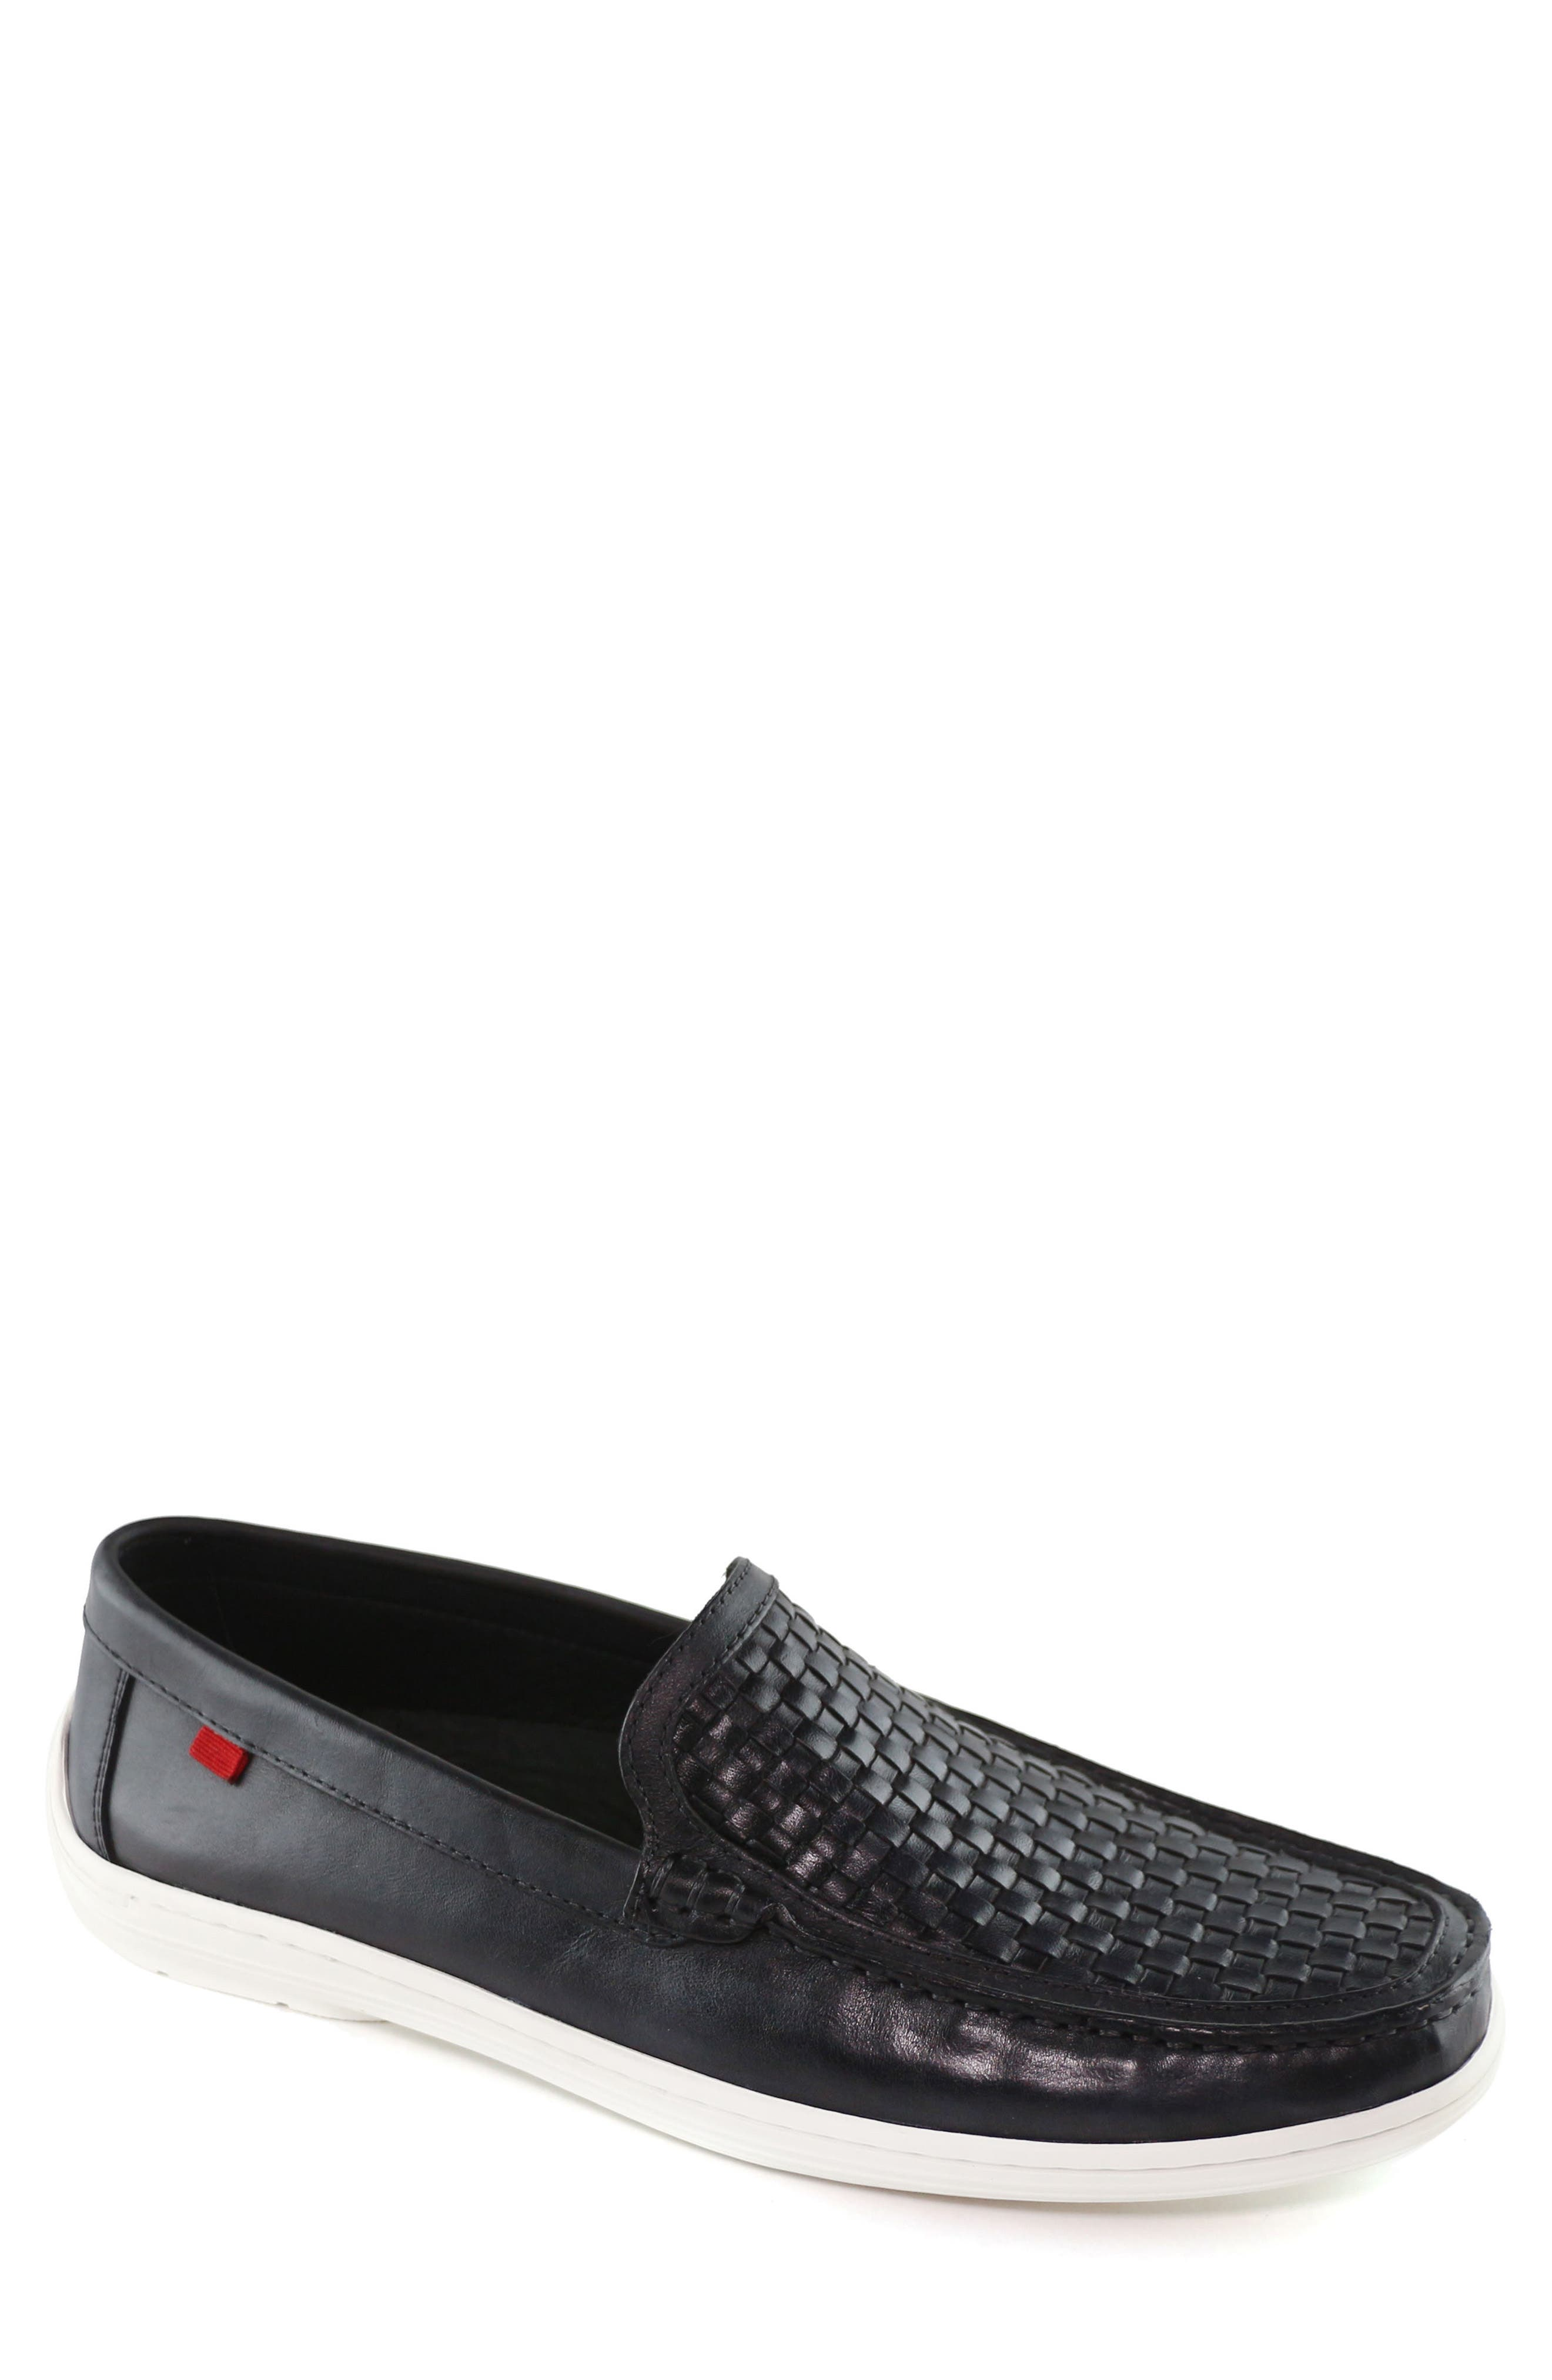 MARC JOSEPH NEW YORK, South Street Woven Driving Loafer, Main thumbnail 1, color, 001